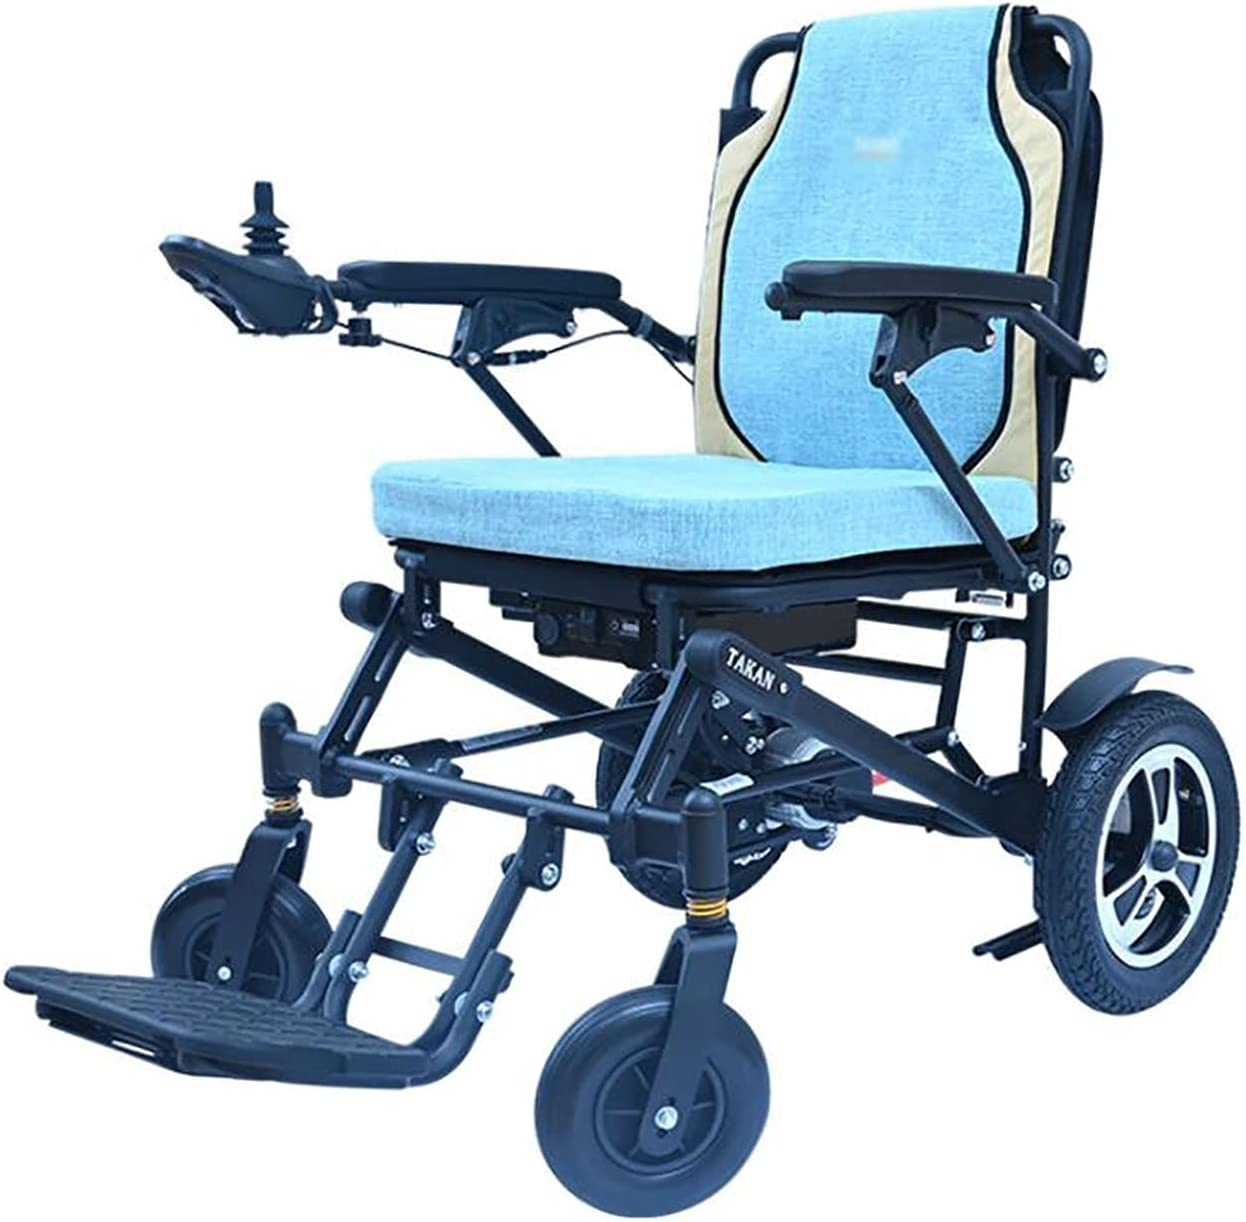 XIAOQIAO latest Smart Electric Wheelchair Foldable and Washington Mall Portable Power W